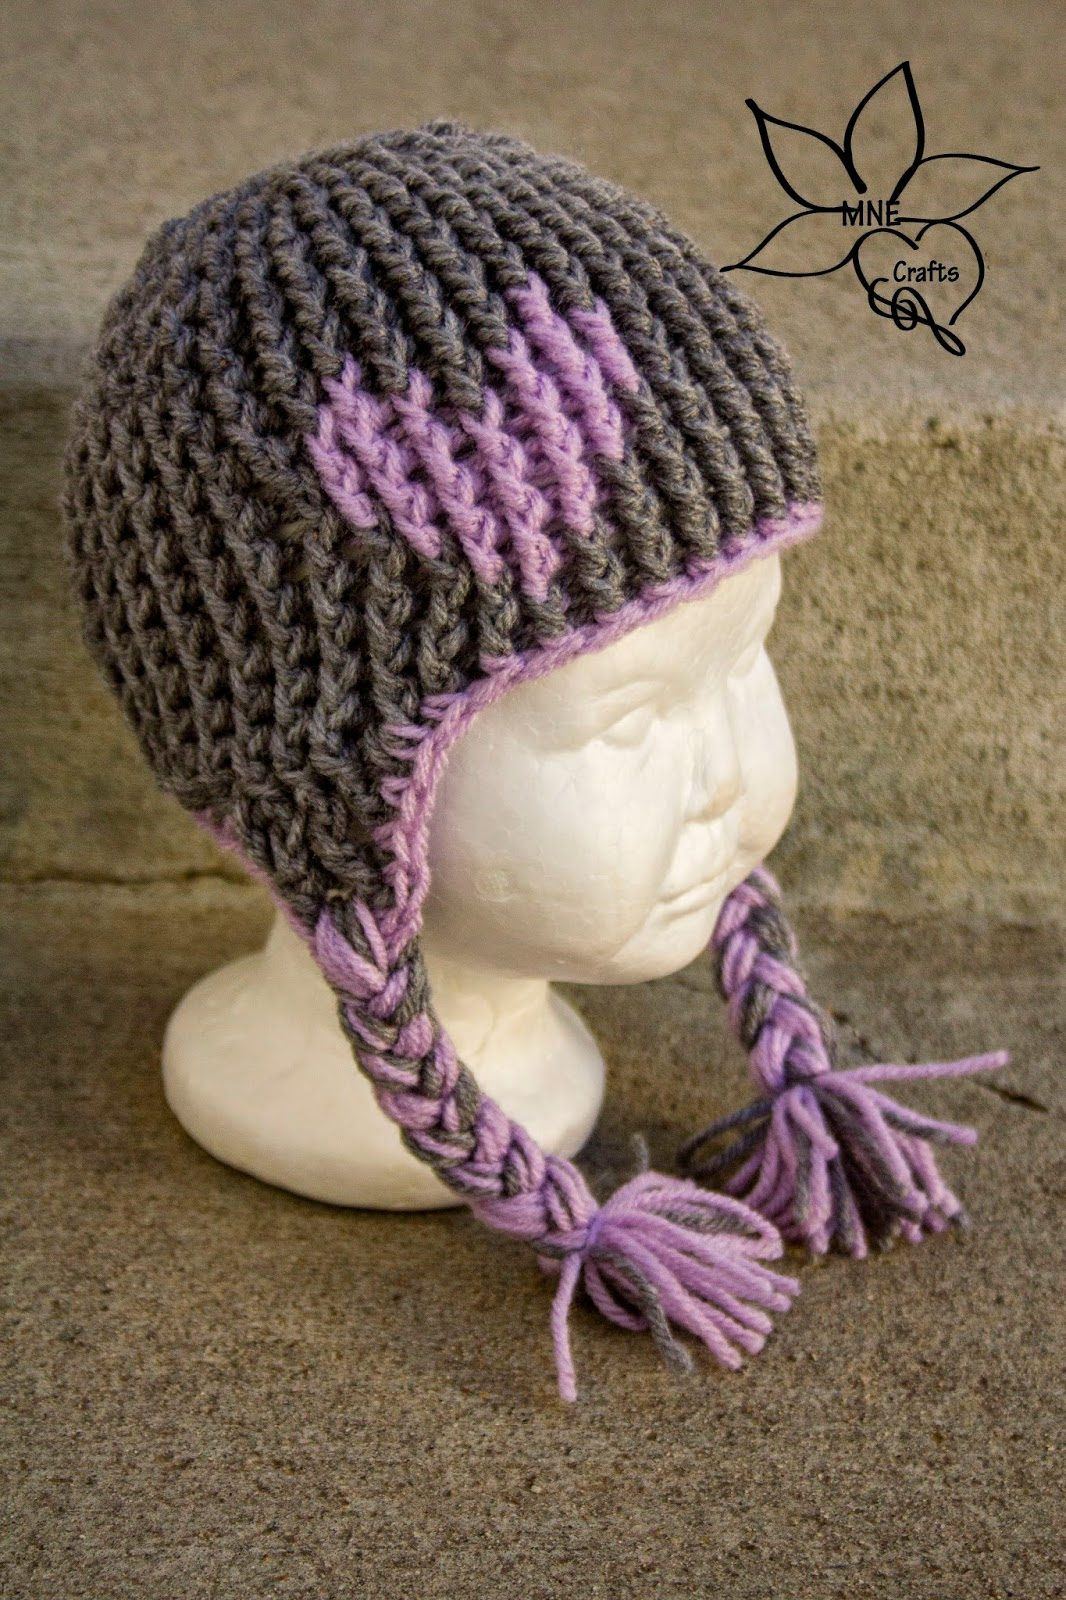 Free Crochet Pattern Toddler Hat Ear Flaps : MNE Crafts: Full of Love Ear-flap Beanie